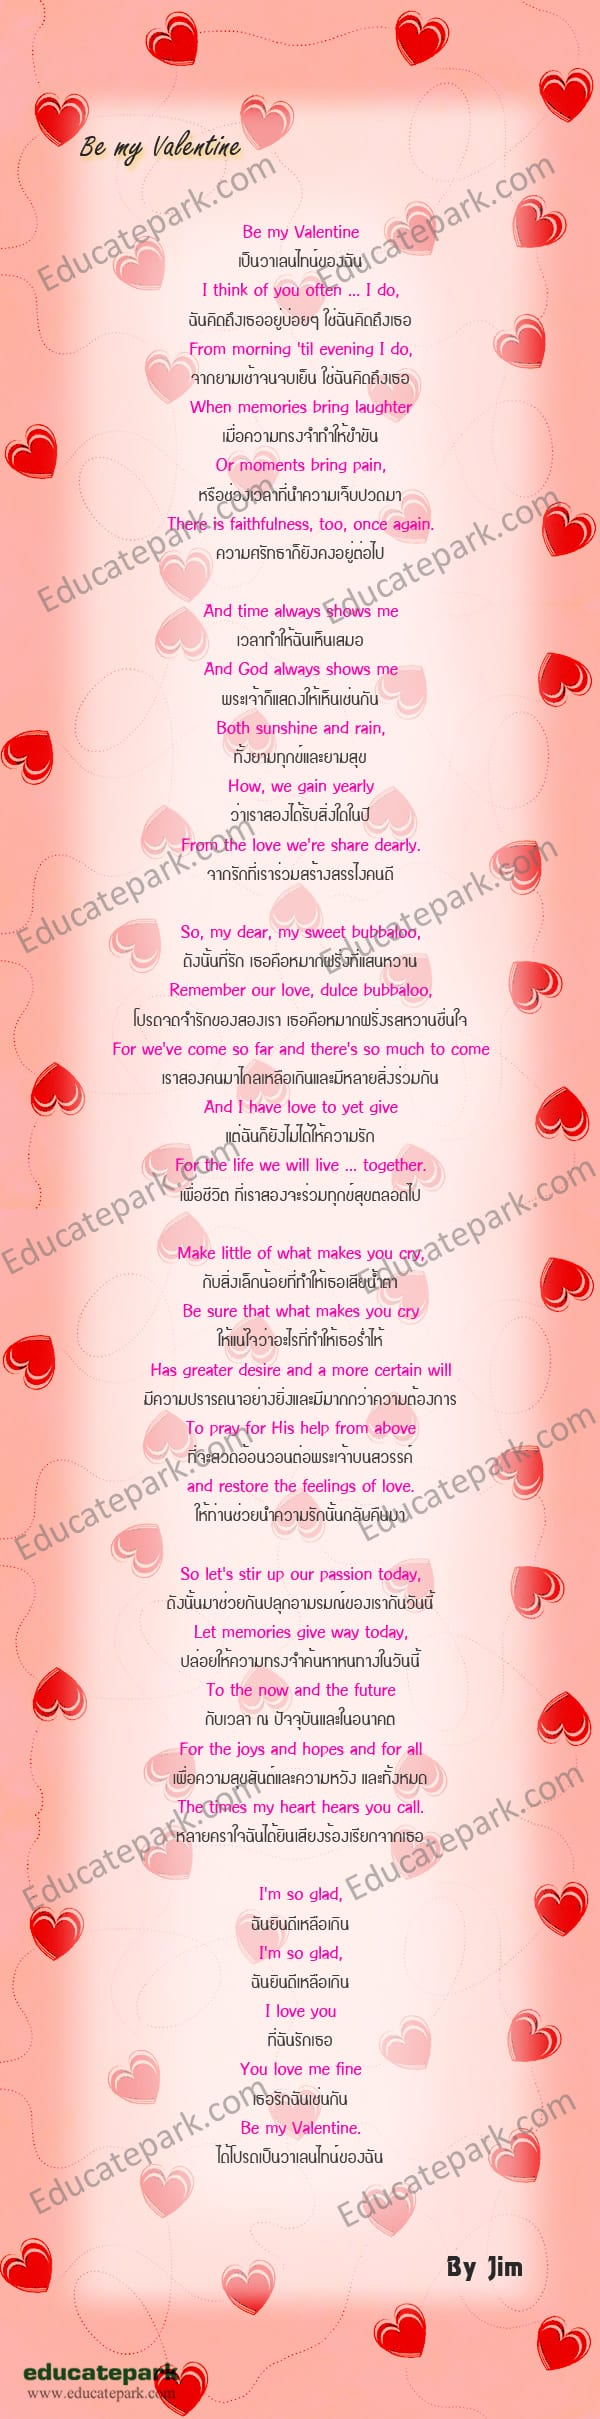 บทกลอน Be My Valentine - Jim